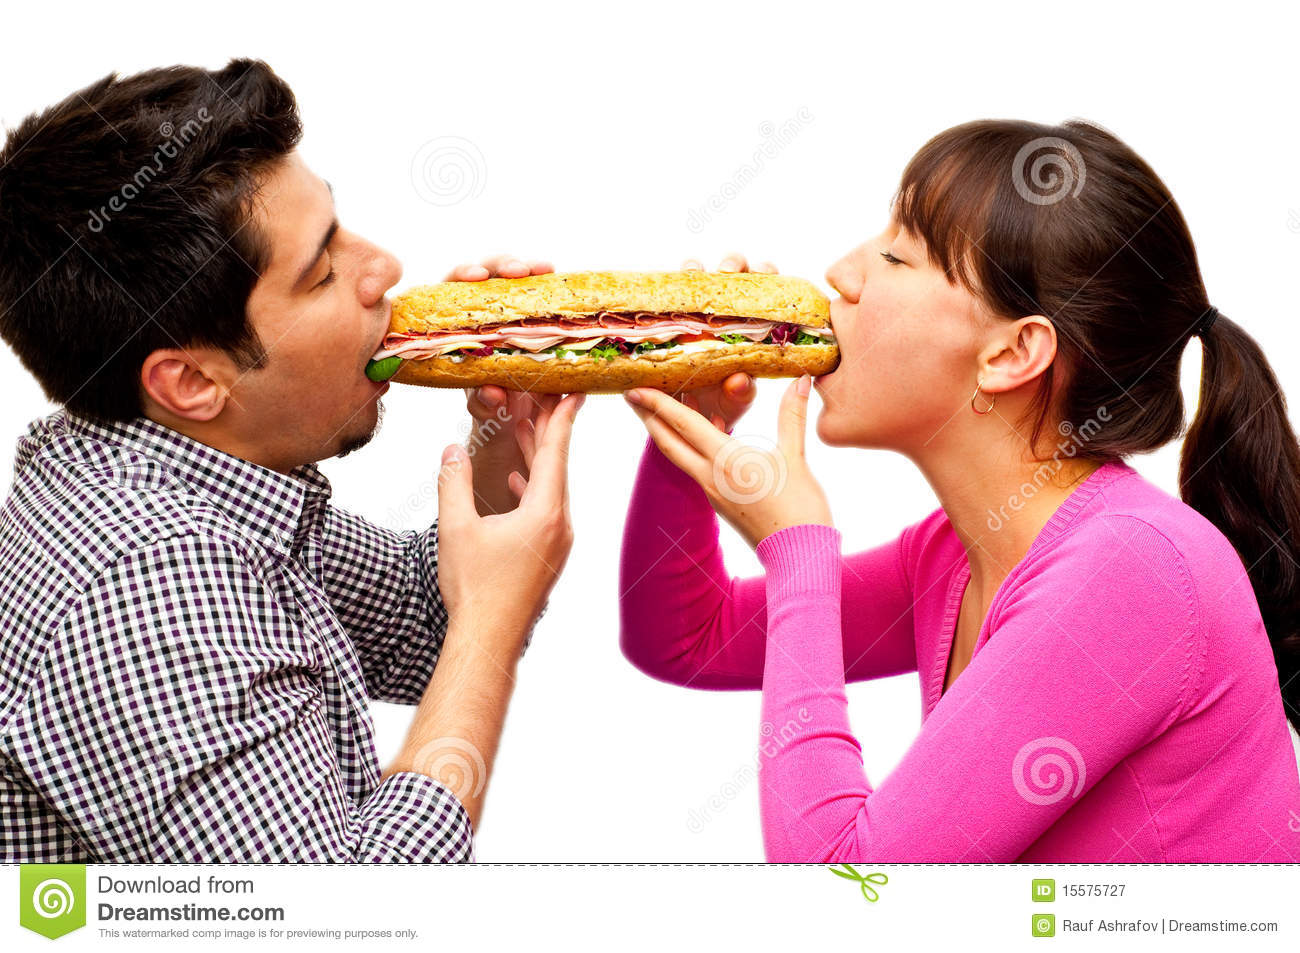 Young man and a woman eating sandwich from